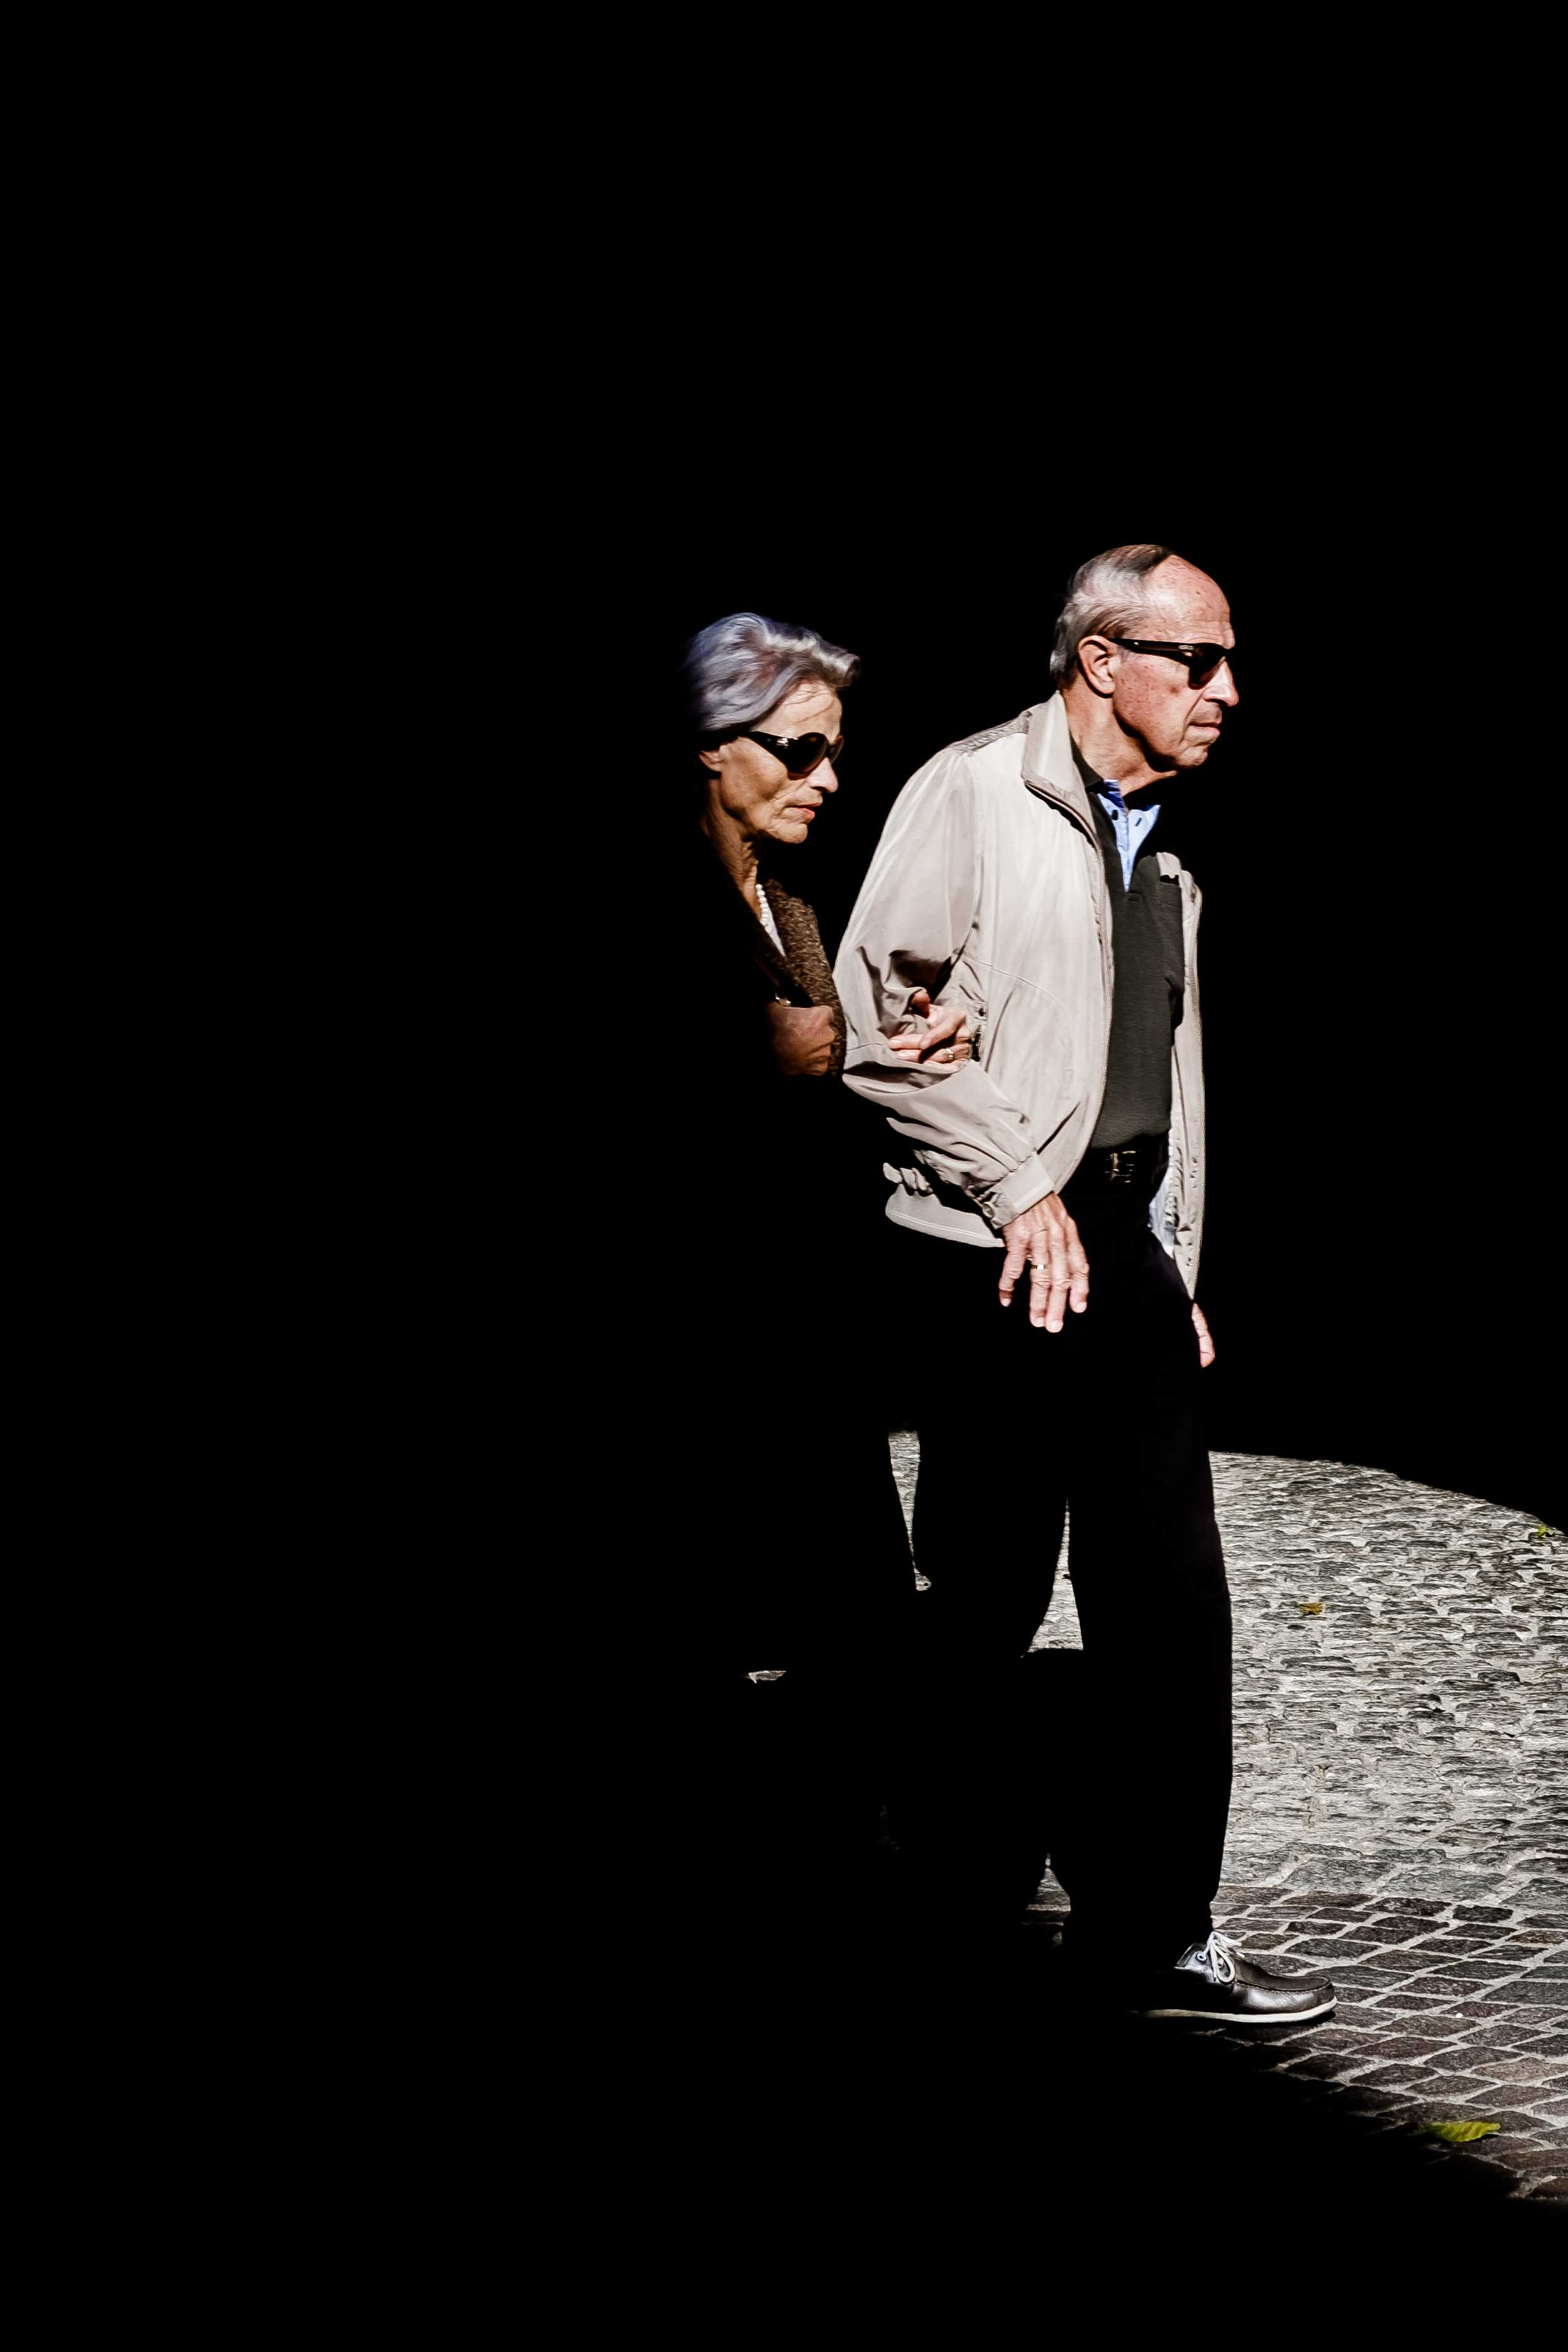 a blind woman and a blind man walking side by side